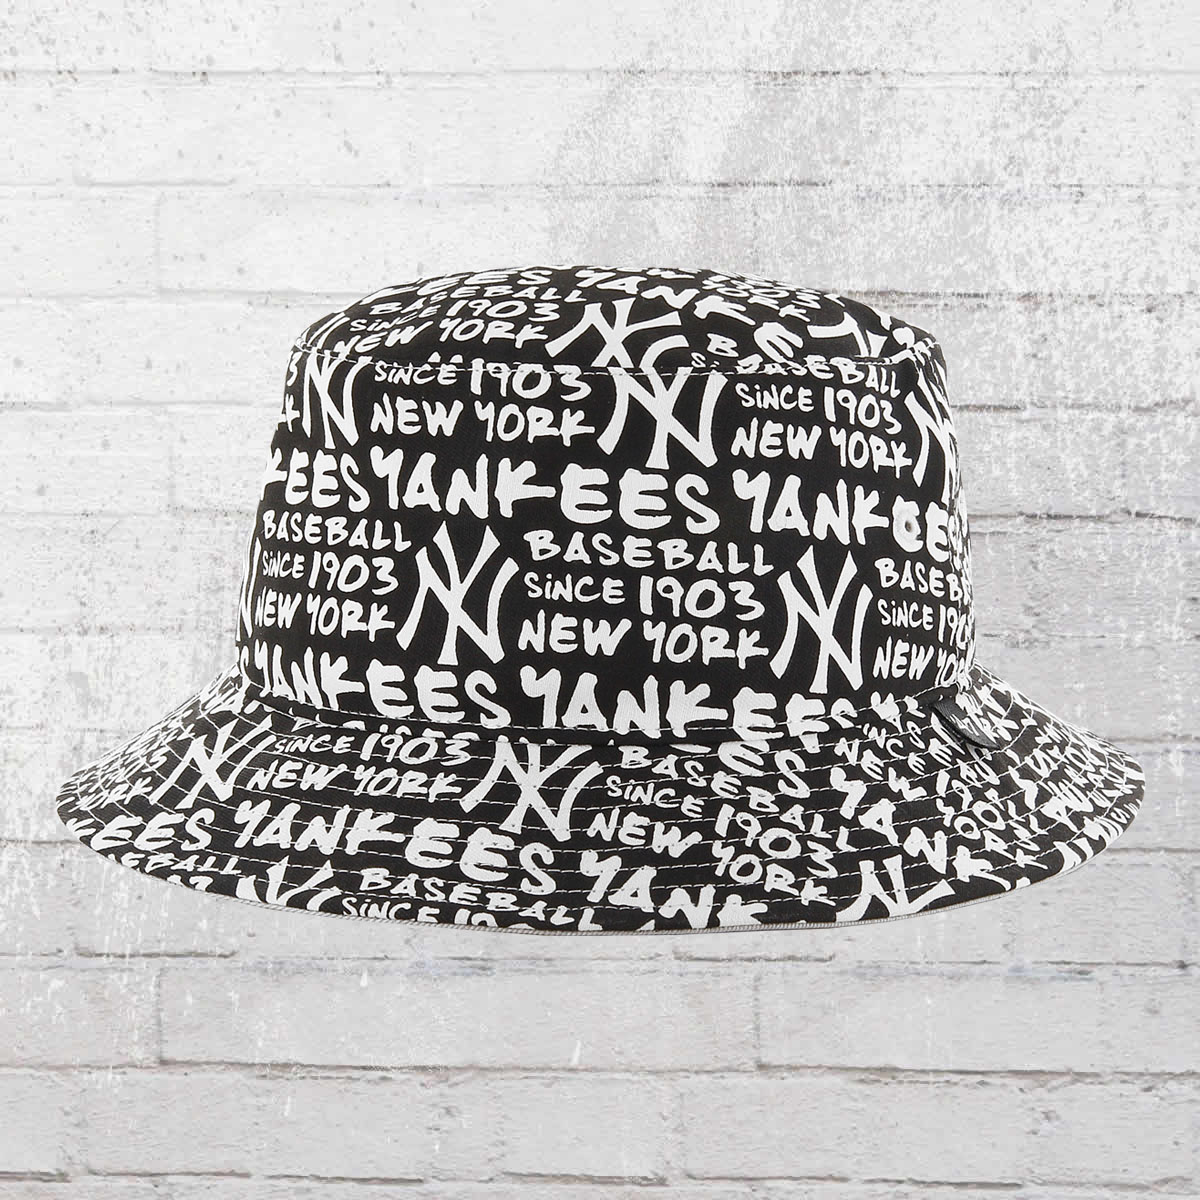 new concept b815a c5424 promo code for new york yankees fisherman hat fashions baad3 dbd0c